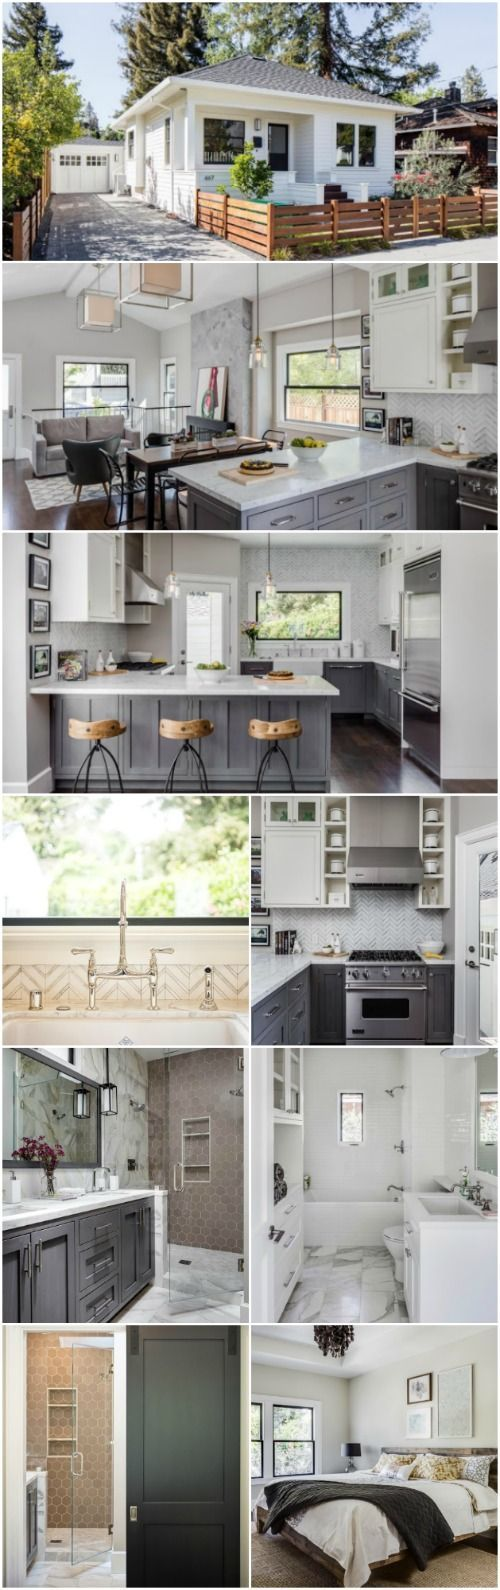 Californian Interior Designer Designs Dreamy Tiny House In Napa Valley Gray Color Schemetle